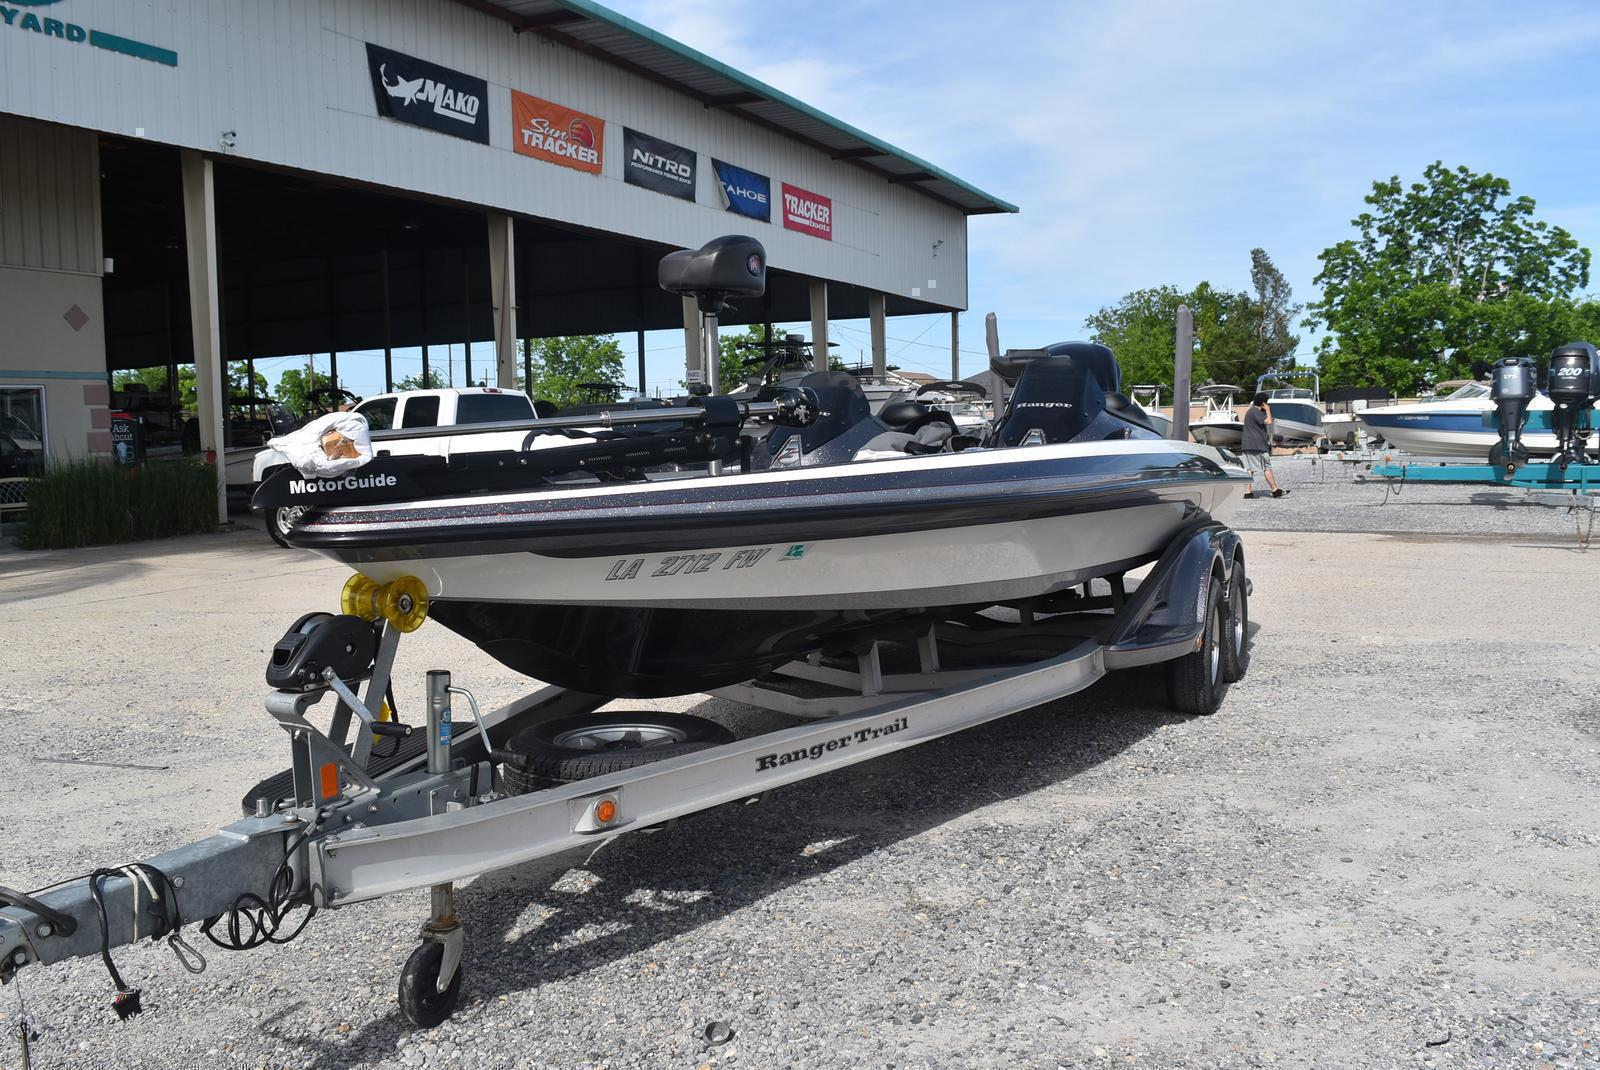 2010 Ranger Boats boat for sale, model of the boat is Z521 Comanche & Image # 28 of 35